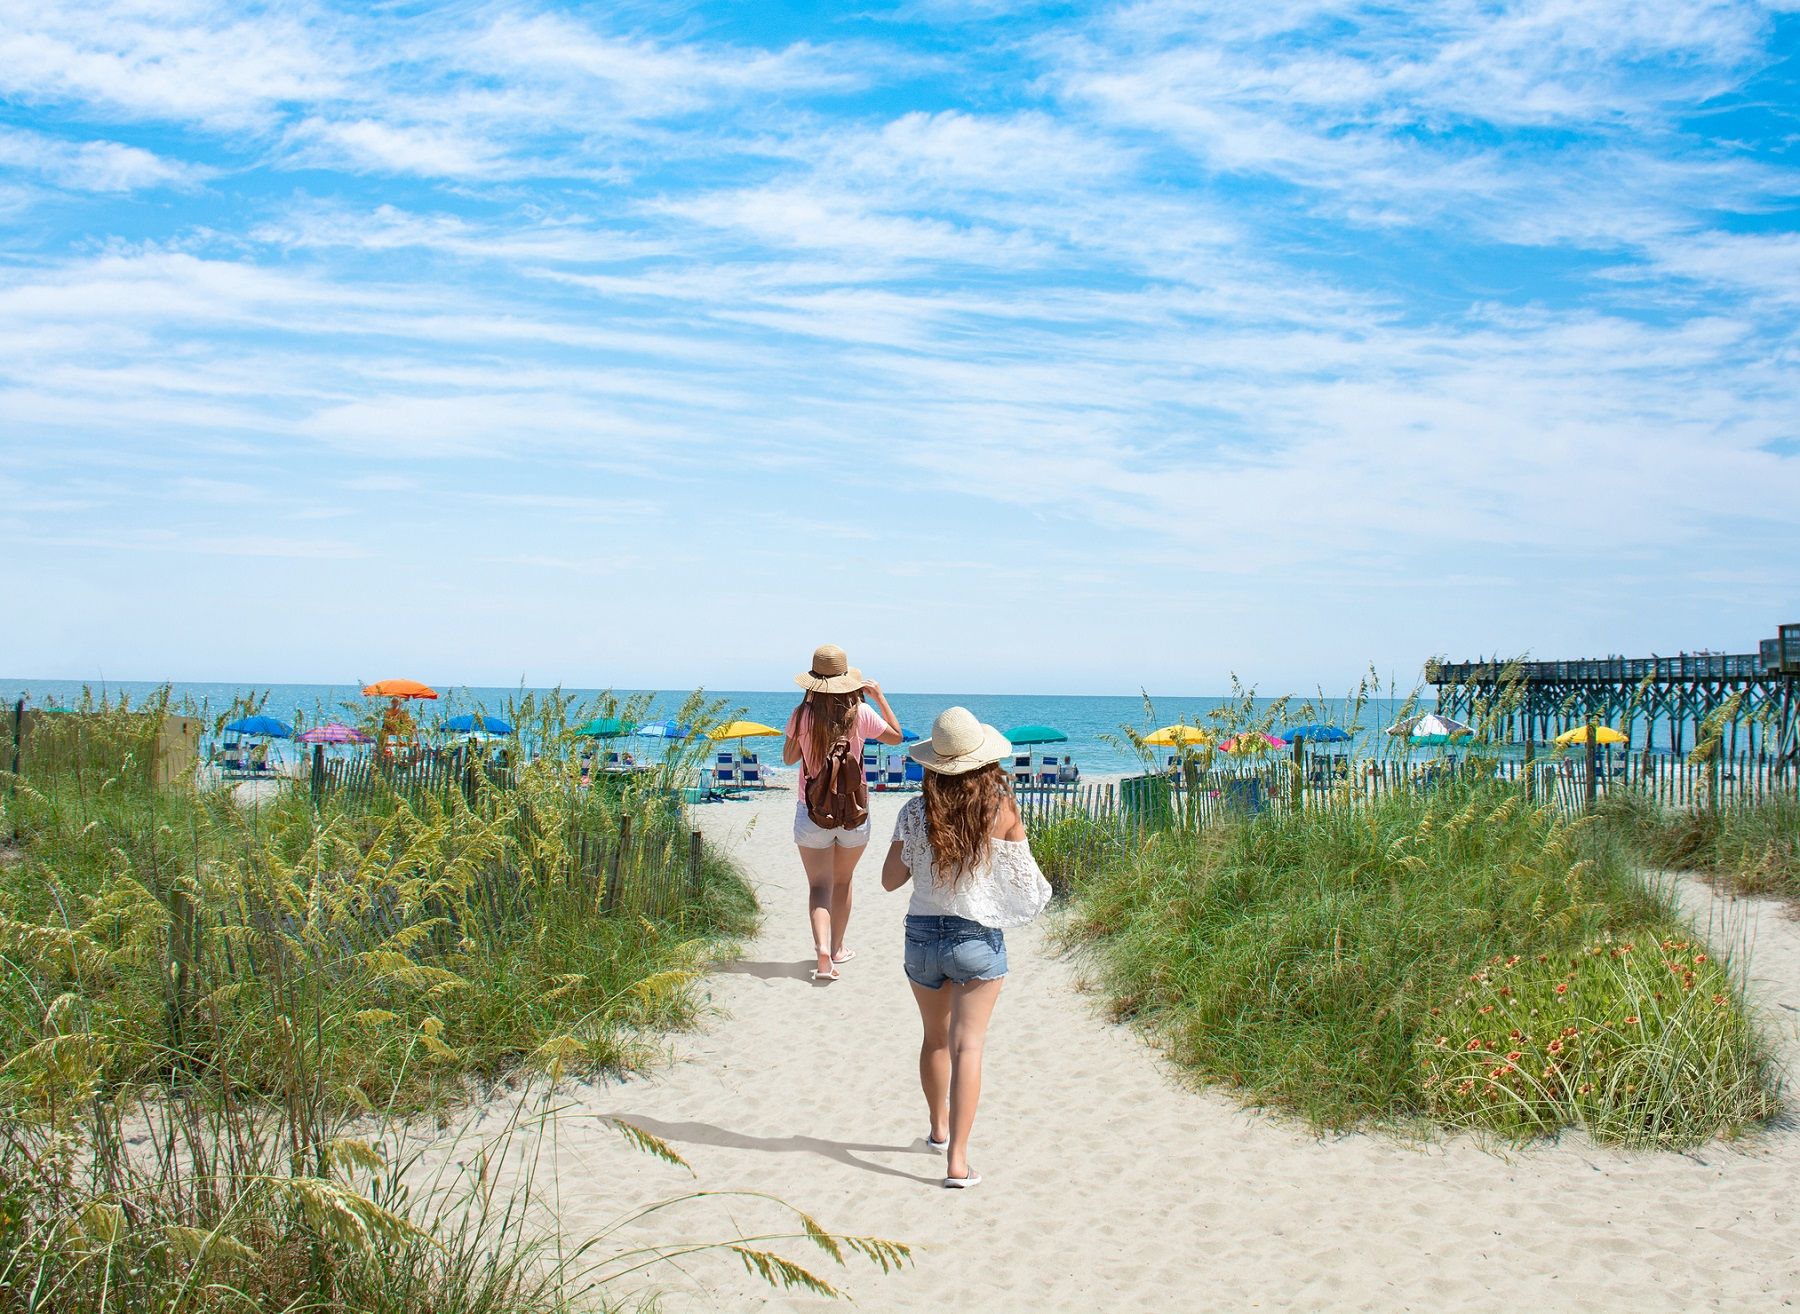 Girls waking on the beach. Footpath on sand dunes and ocean in the background. Myrtle Beach, South Carolina, USA